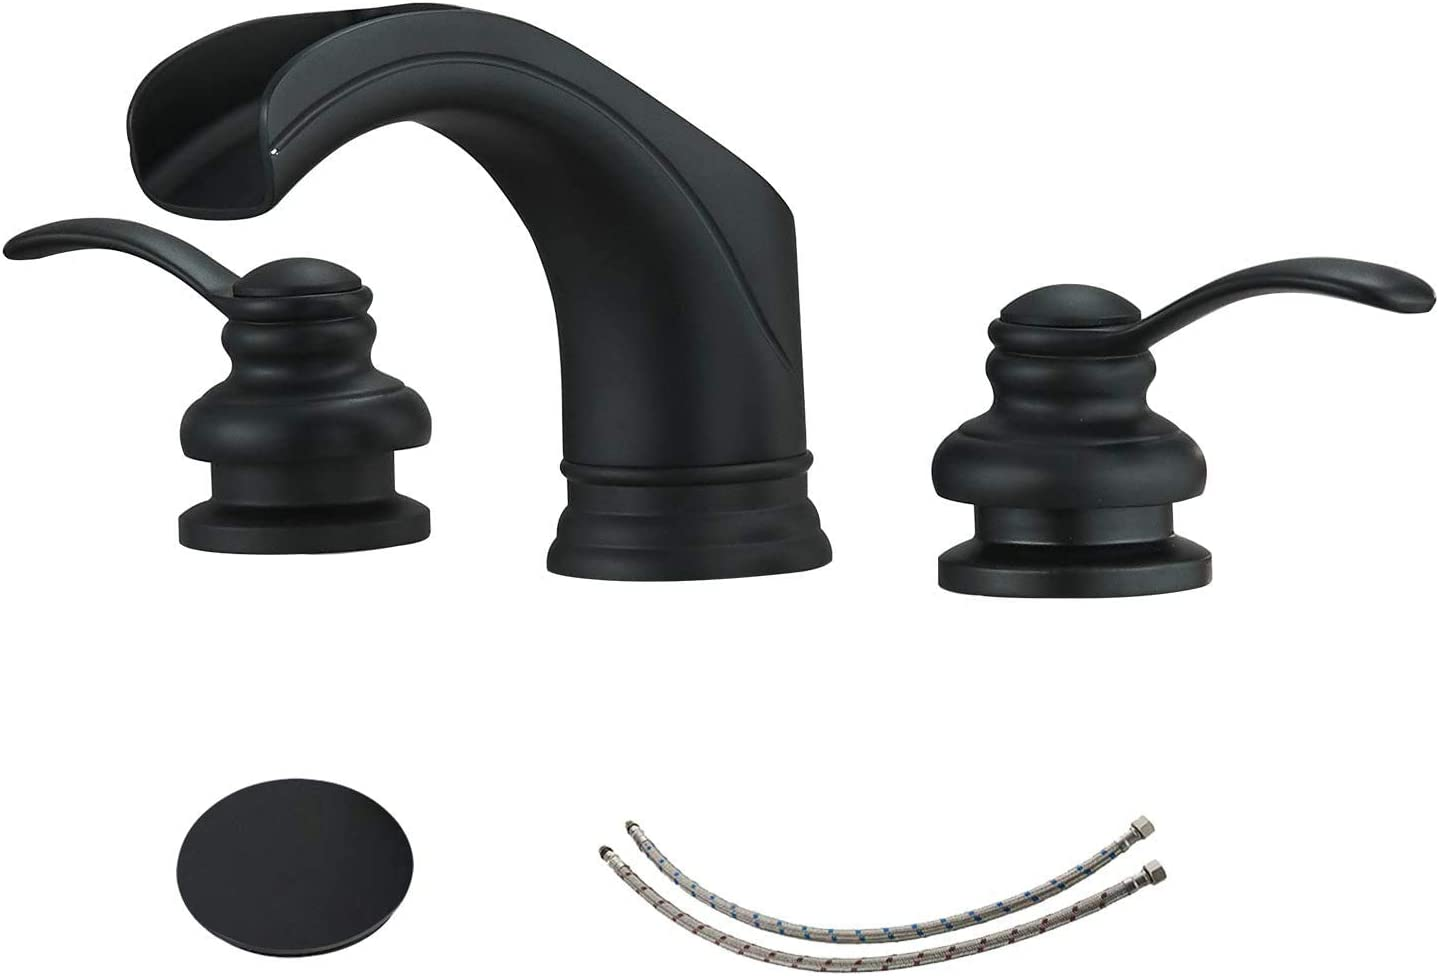 Black Widespread Bathroom Faucet 3 Hole Waterfall 2-Handle 8-16 Inch with Pop Up Drain Assembly Sink Vanity Farmhouse with Overflow Glacier Bay Supply Line Lead-Free by Homevacious